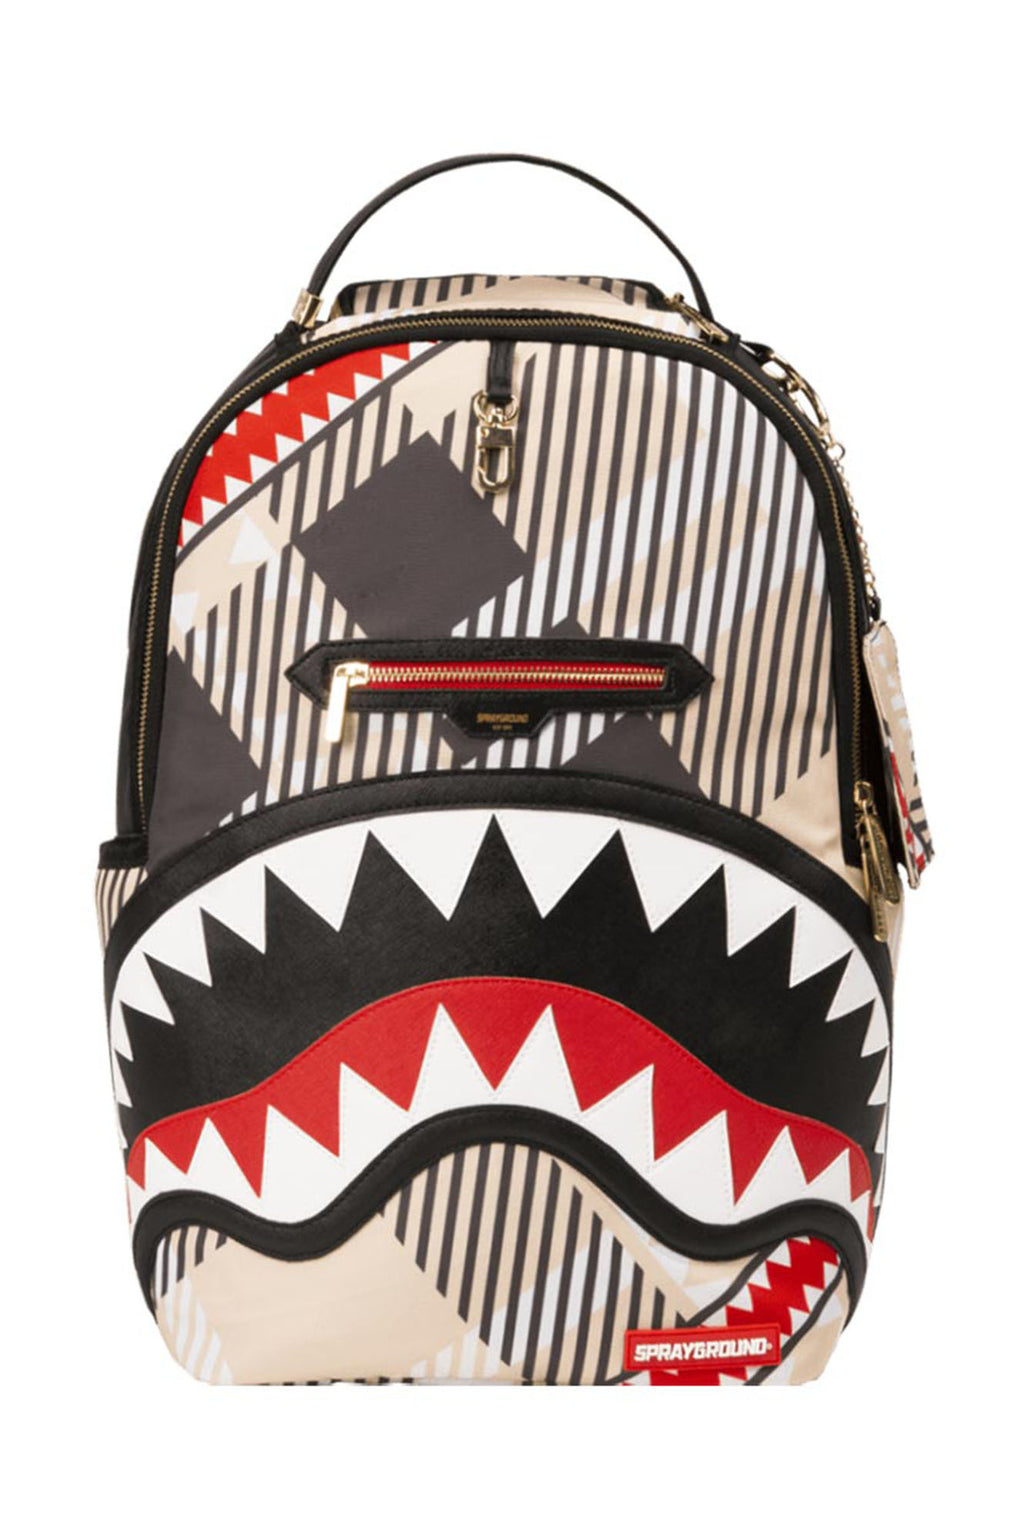 Sprayground Acc Sharkburry Backpack